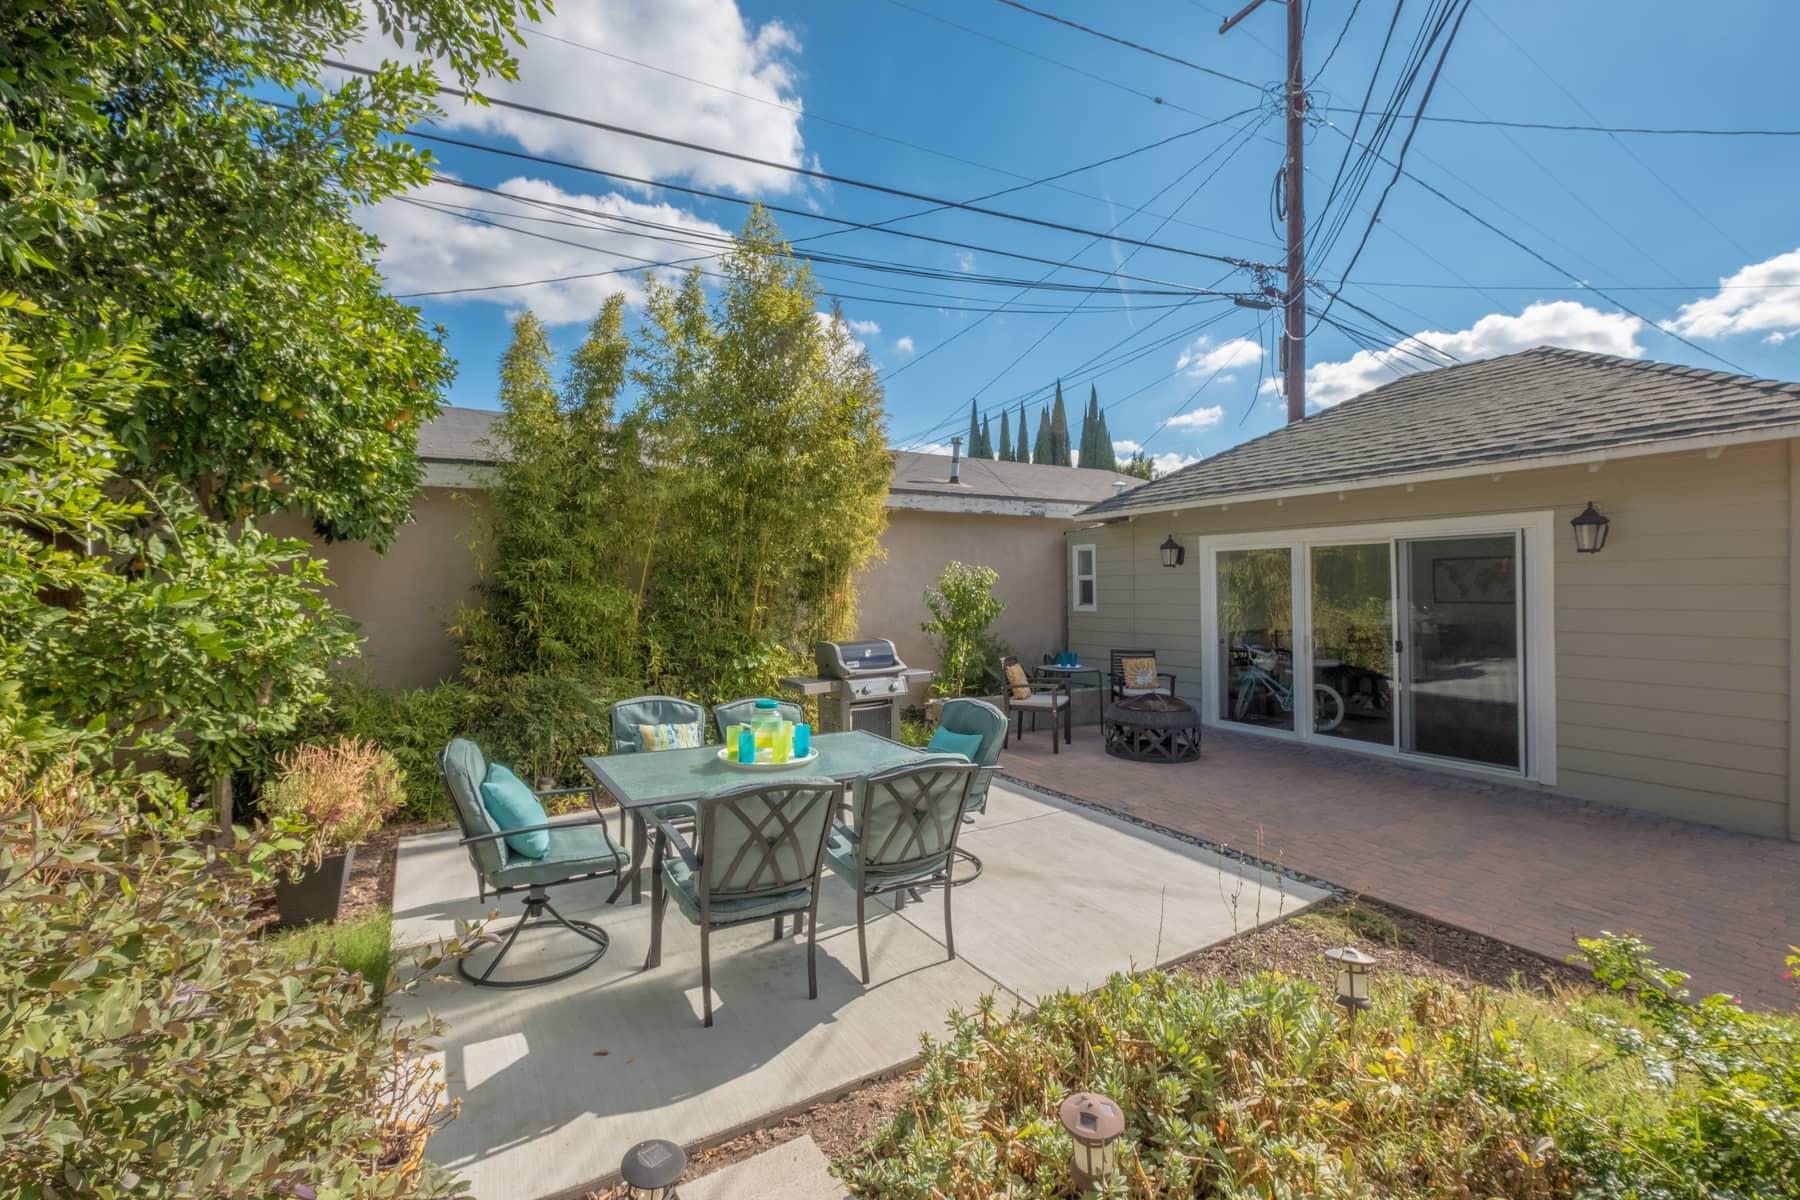 There is enough parking space to accommodate 6+ cars along the long brick-paved driveway, which is divided in half by a motorized security gate. And in the back, a private yard features lots of patio space surrounded by gardens and fruit trees.